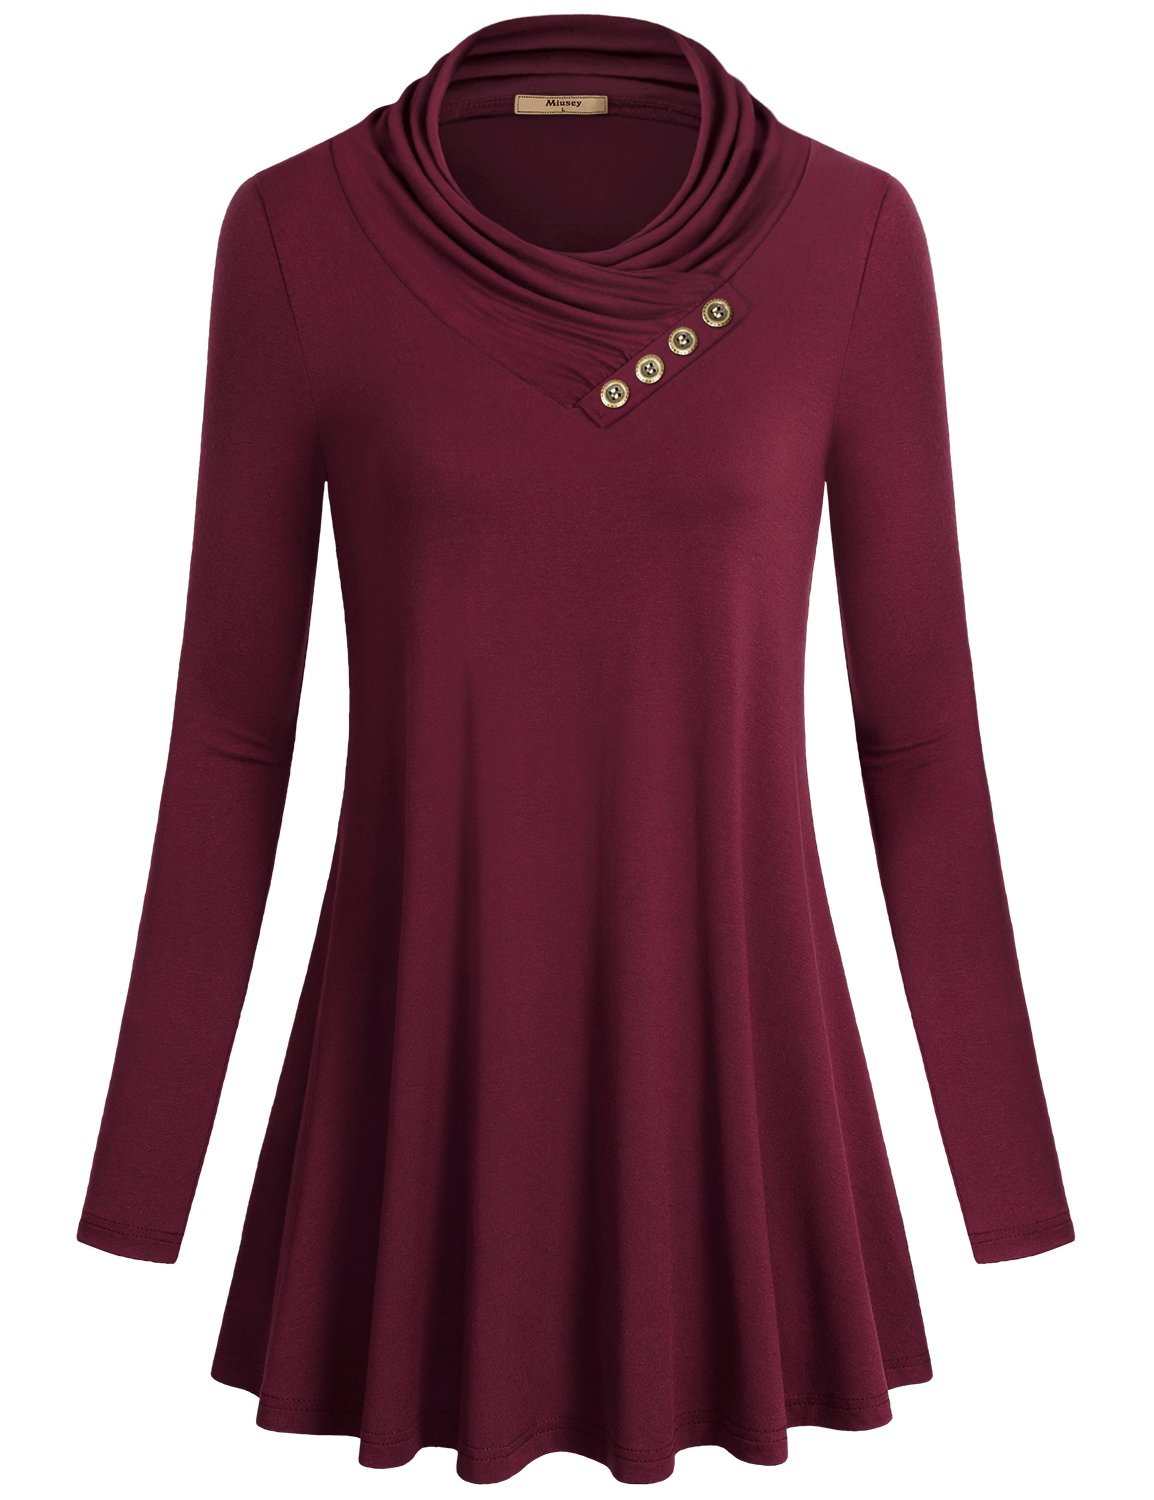 Miusey Womens Tunic Tops Ladies Long Sleeve Easy Fit Outdoor T Shirt Flowing Cowl Neck Button Décor Pullover Knit A Line Elastic Youth Blouses Pregnancy Plus Size Sweaters Wine XXXL